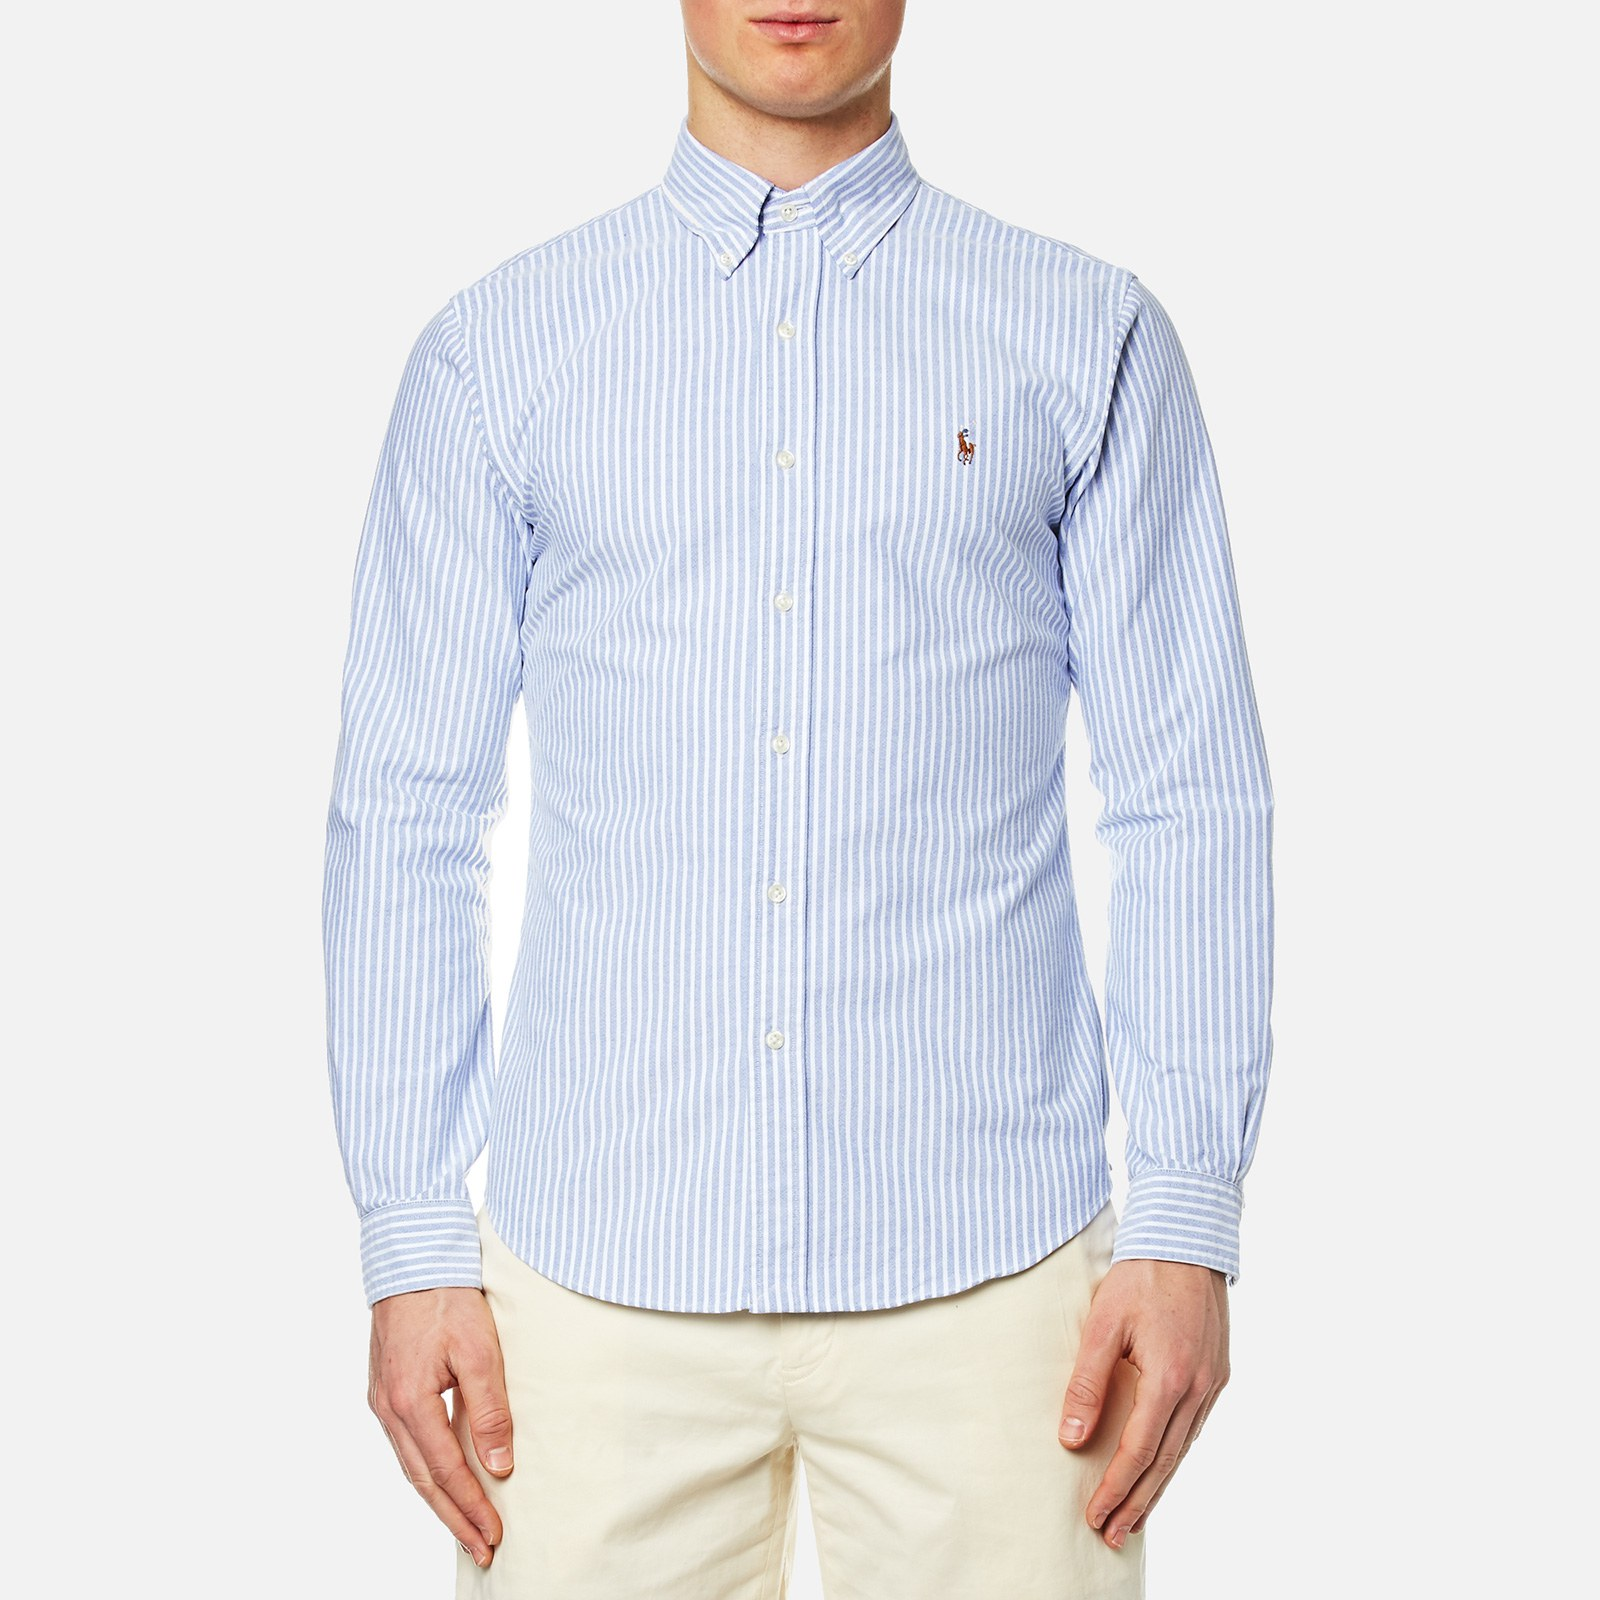 69eba5de5 Polo Ralph Lauren Men s Slim Fit Bengal Stripe Oxford Shirt - Blue White -  Free UK Delivery over £50